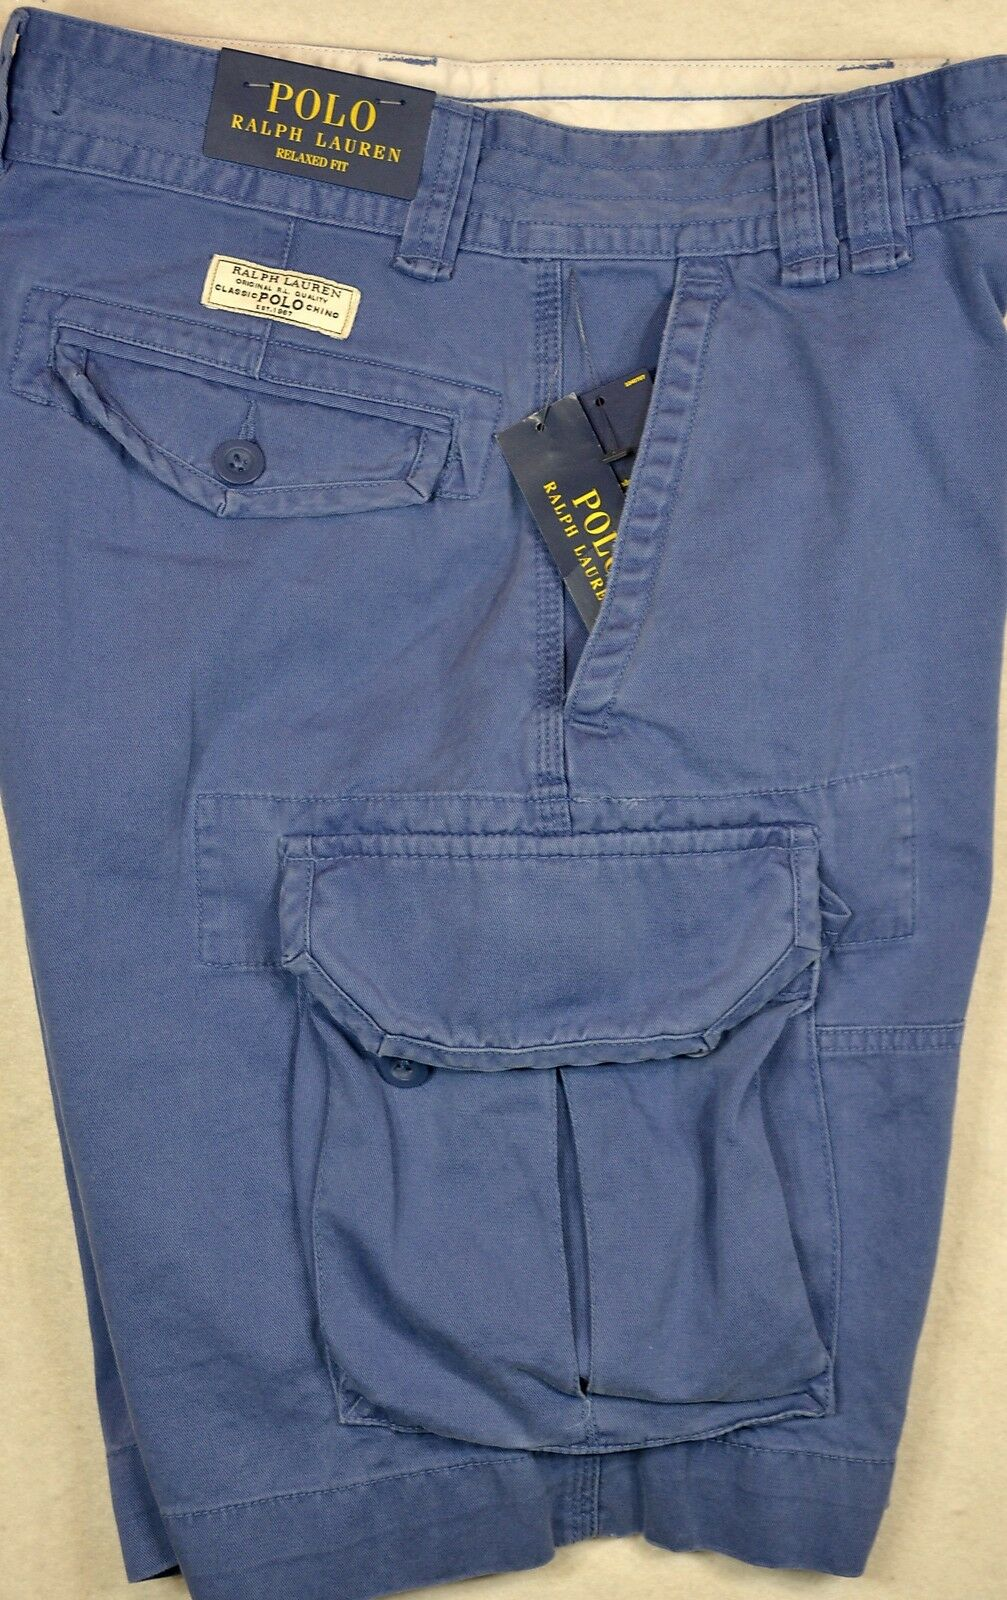 Polo Ralph Lauren Cargos Gellar Fatigue Cargo Shorts bluee Size 31 NWT